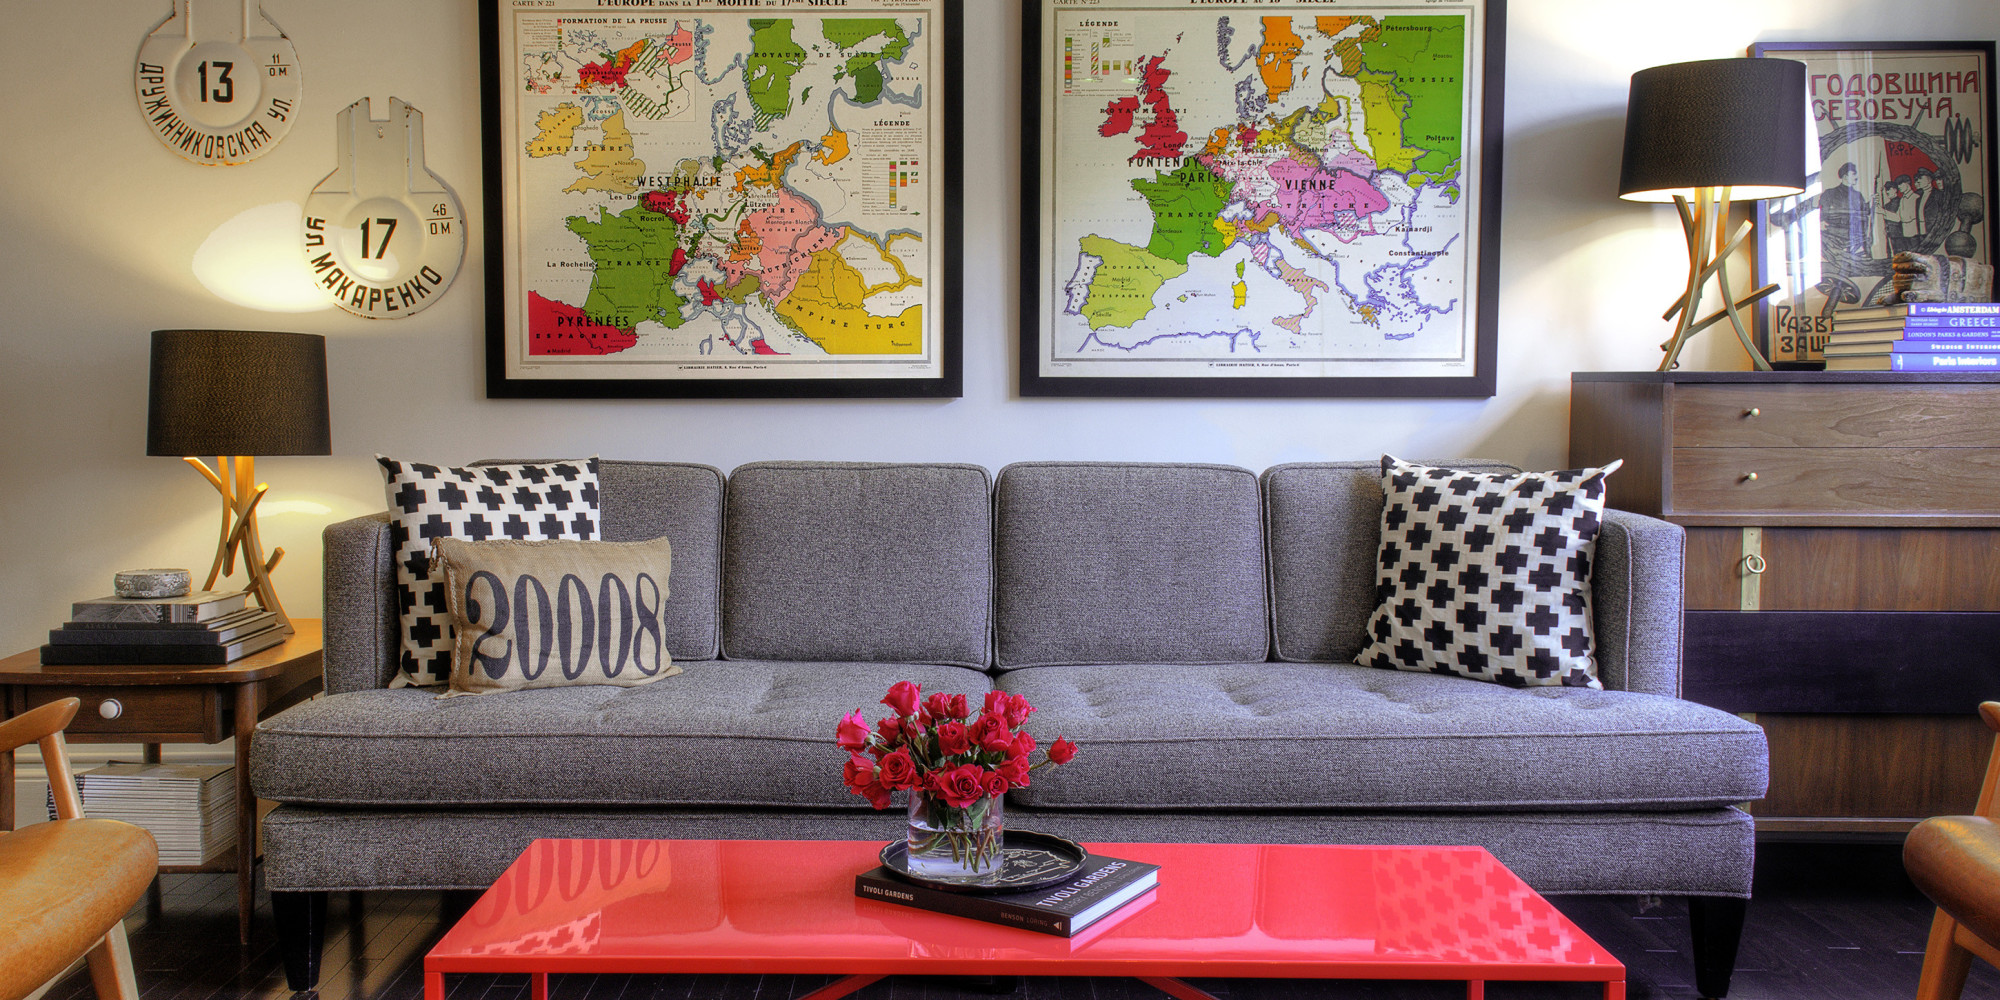 50 Ways To Update Your Living Room For $50 Or Less (PHOTOS